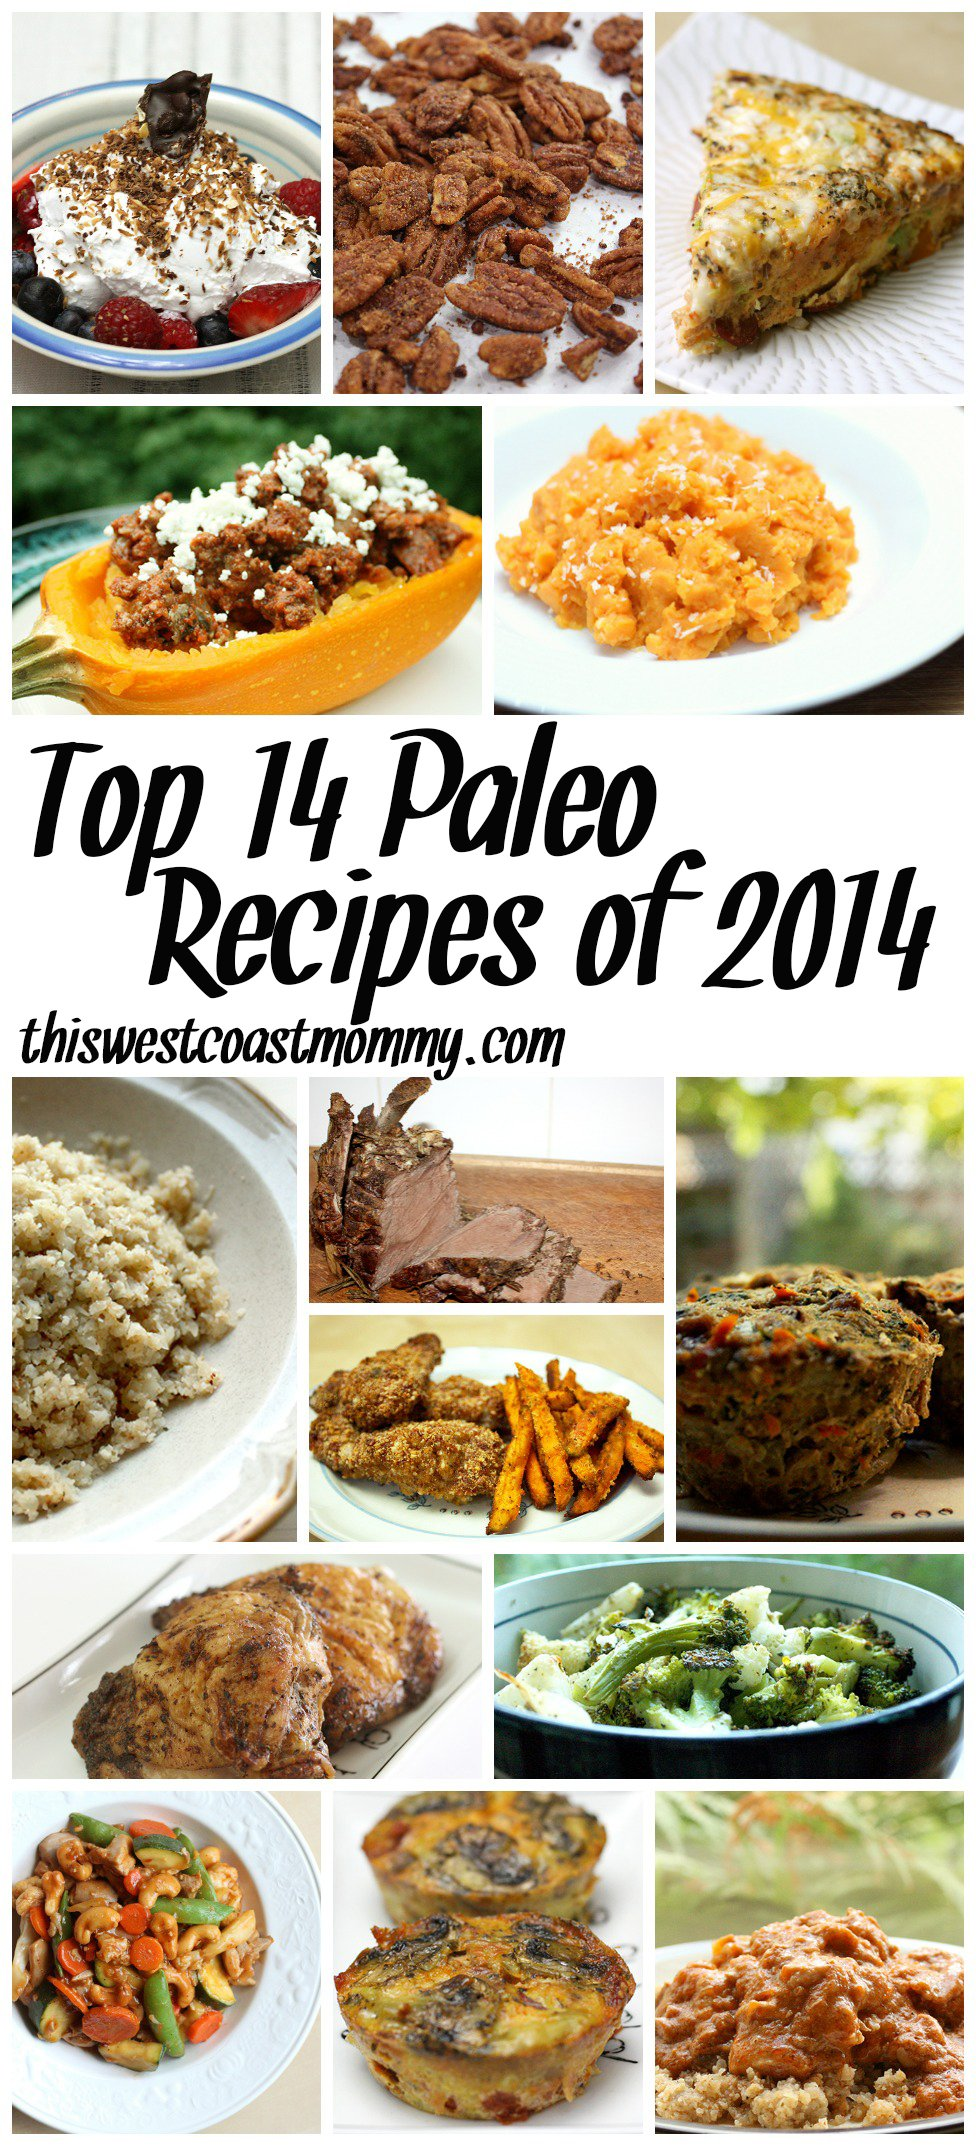 Top 14 Paleo Recipes of 2014